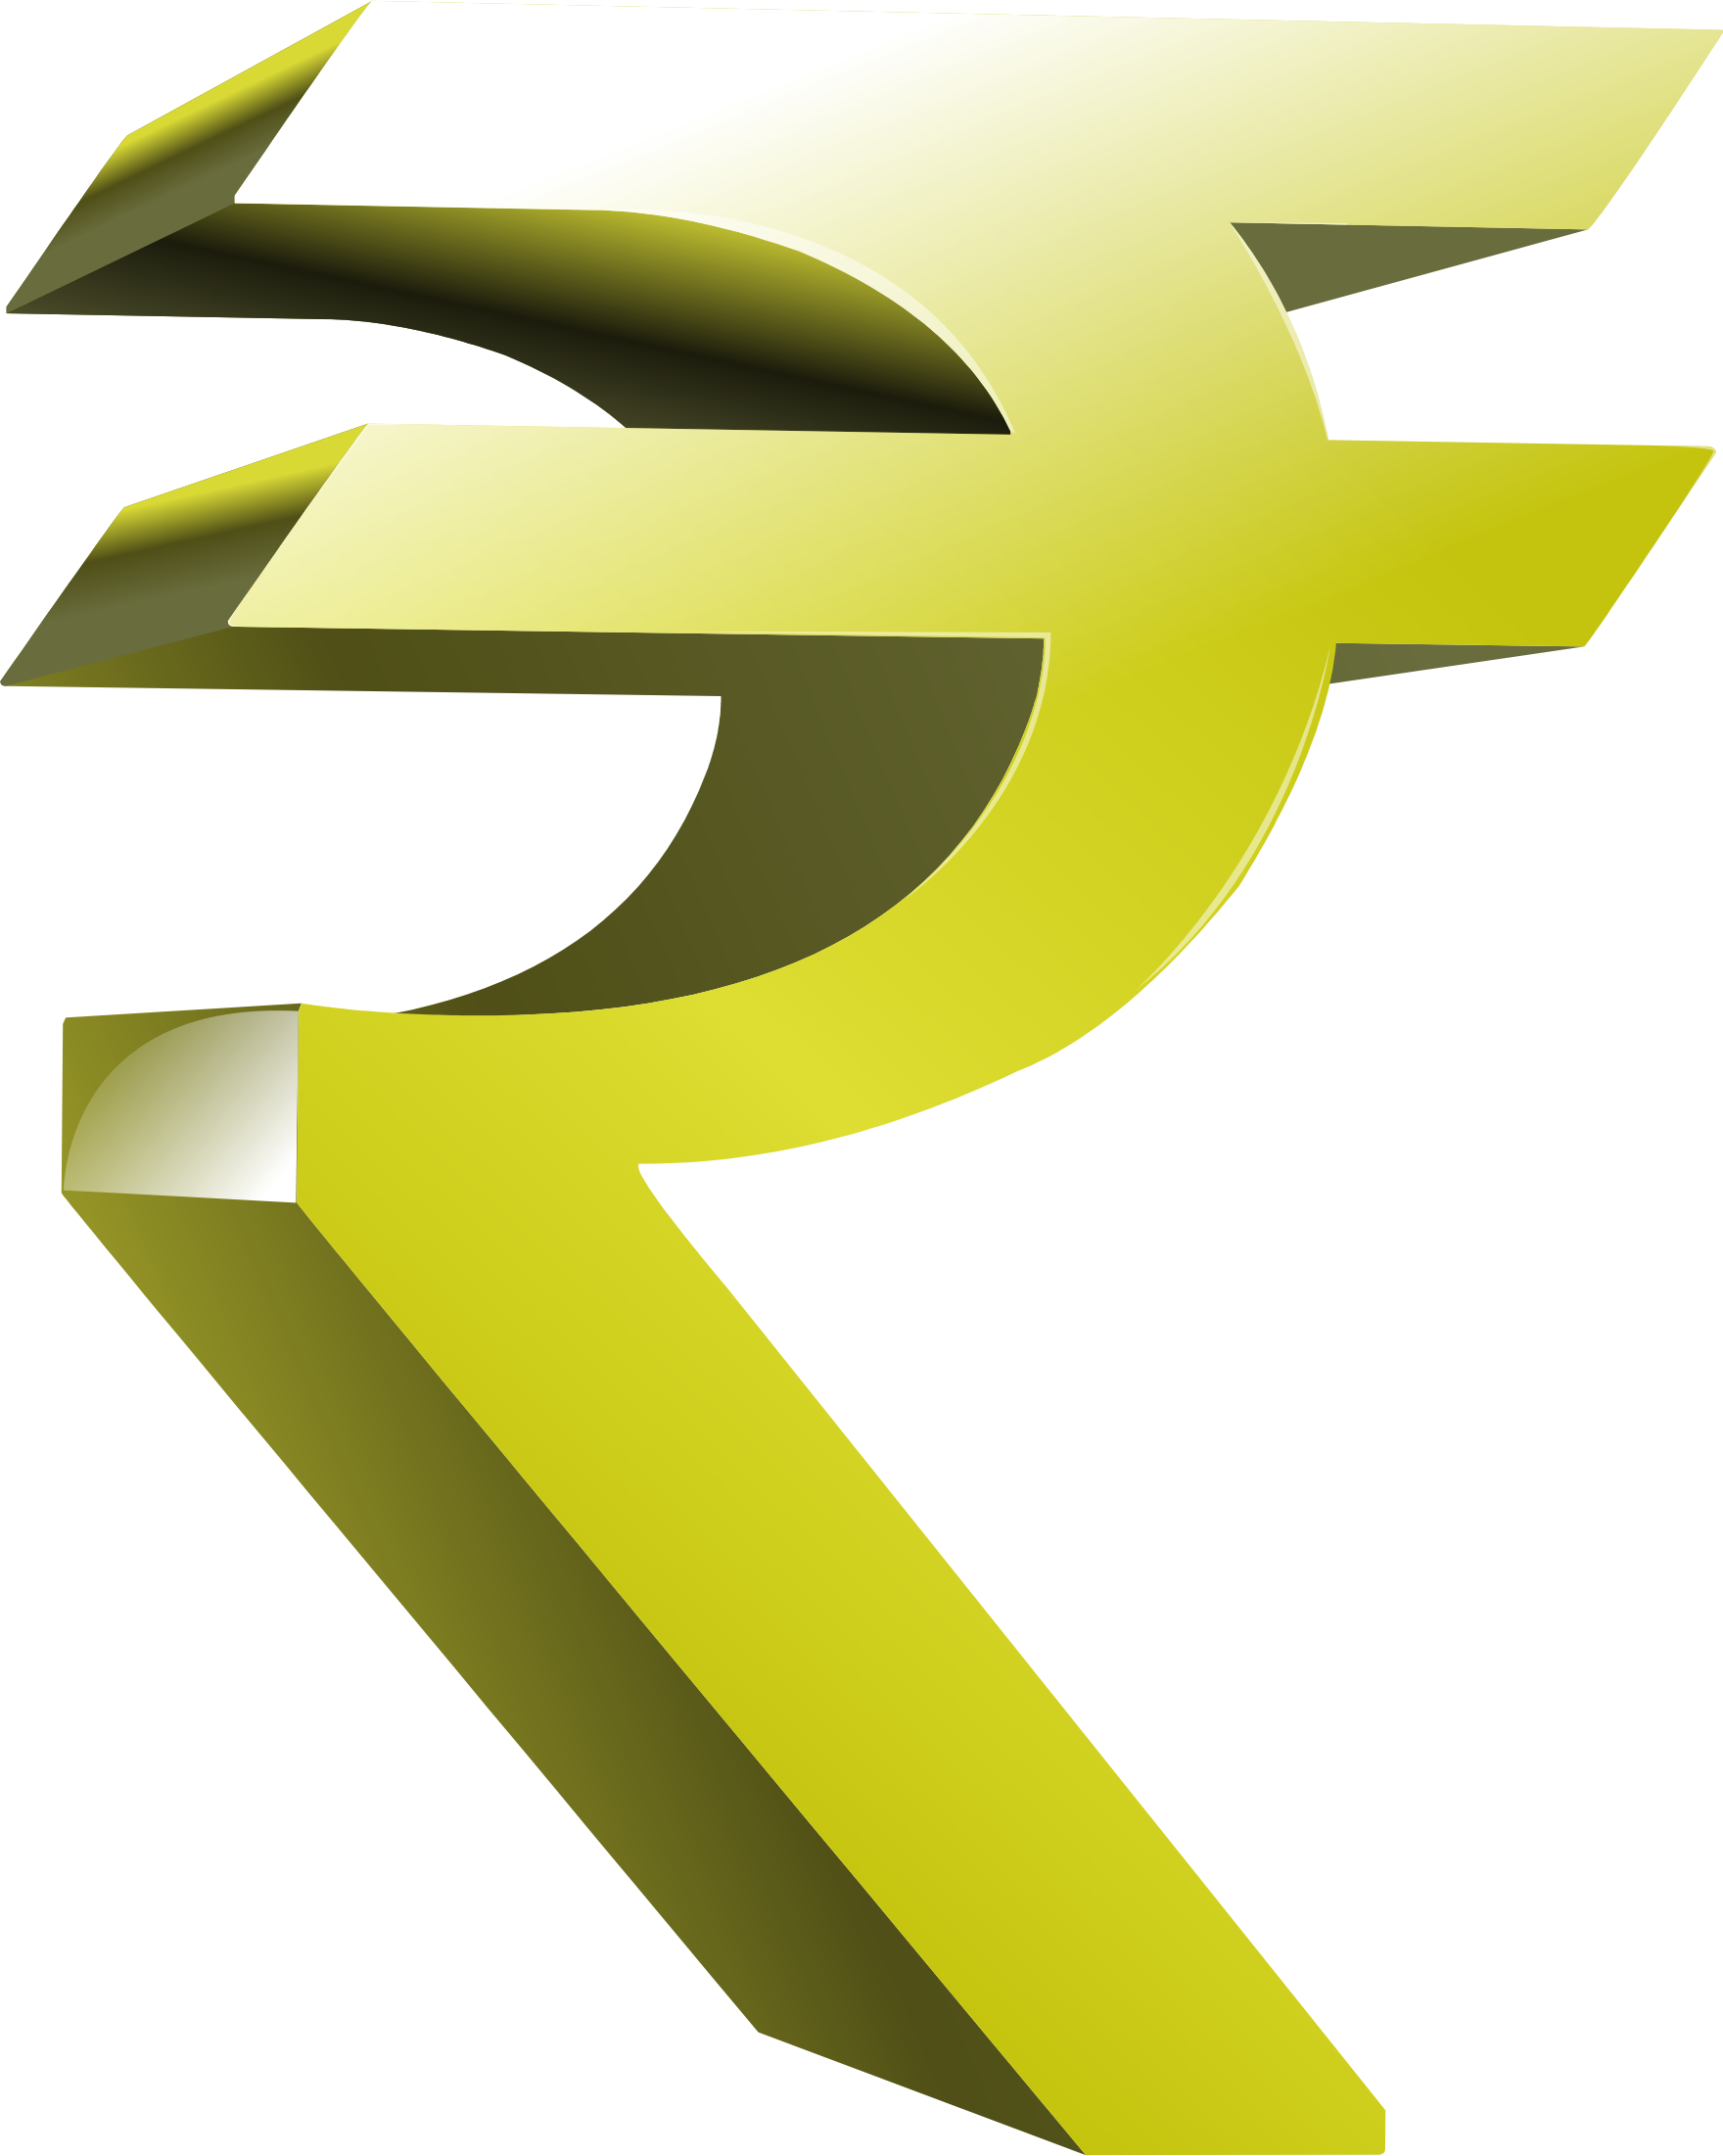 Rupee PNG Images Transparent Free Download | PNGMart.com royalty free stock